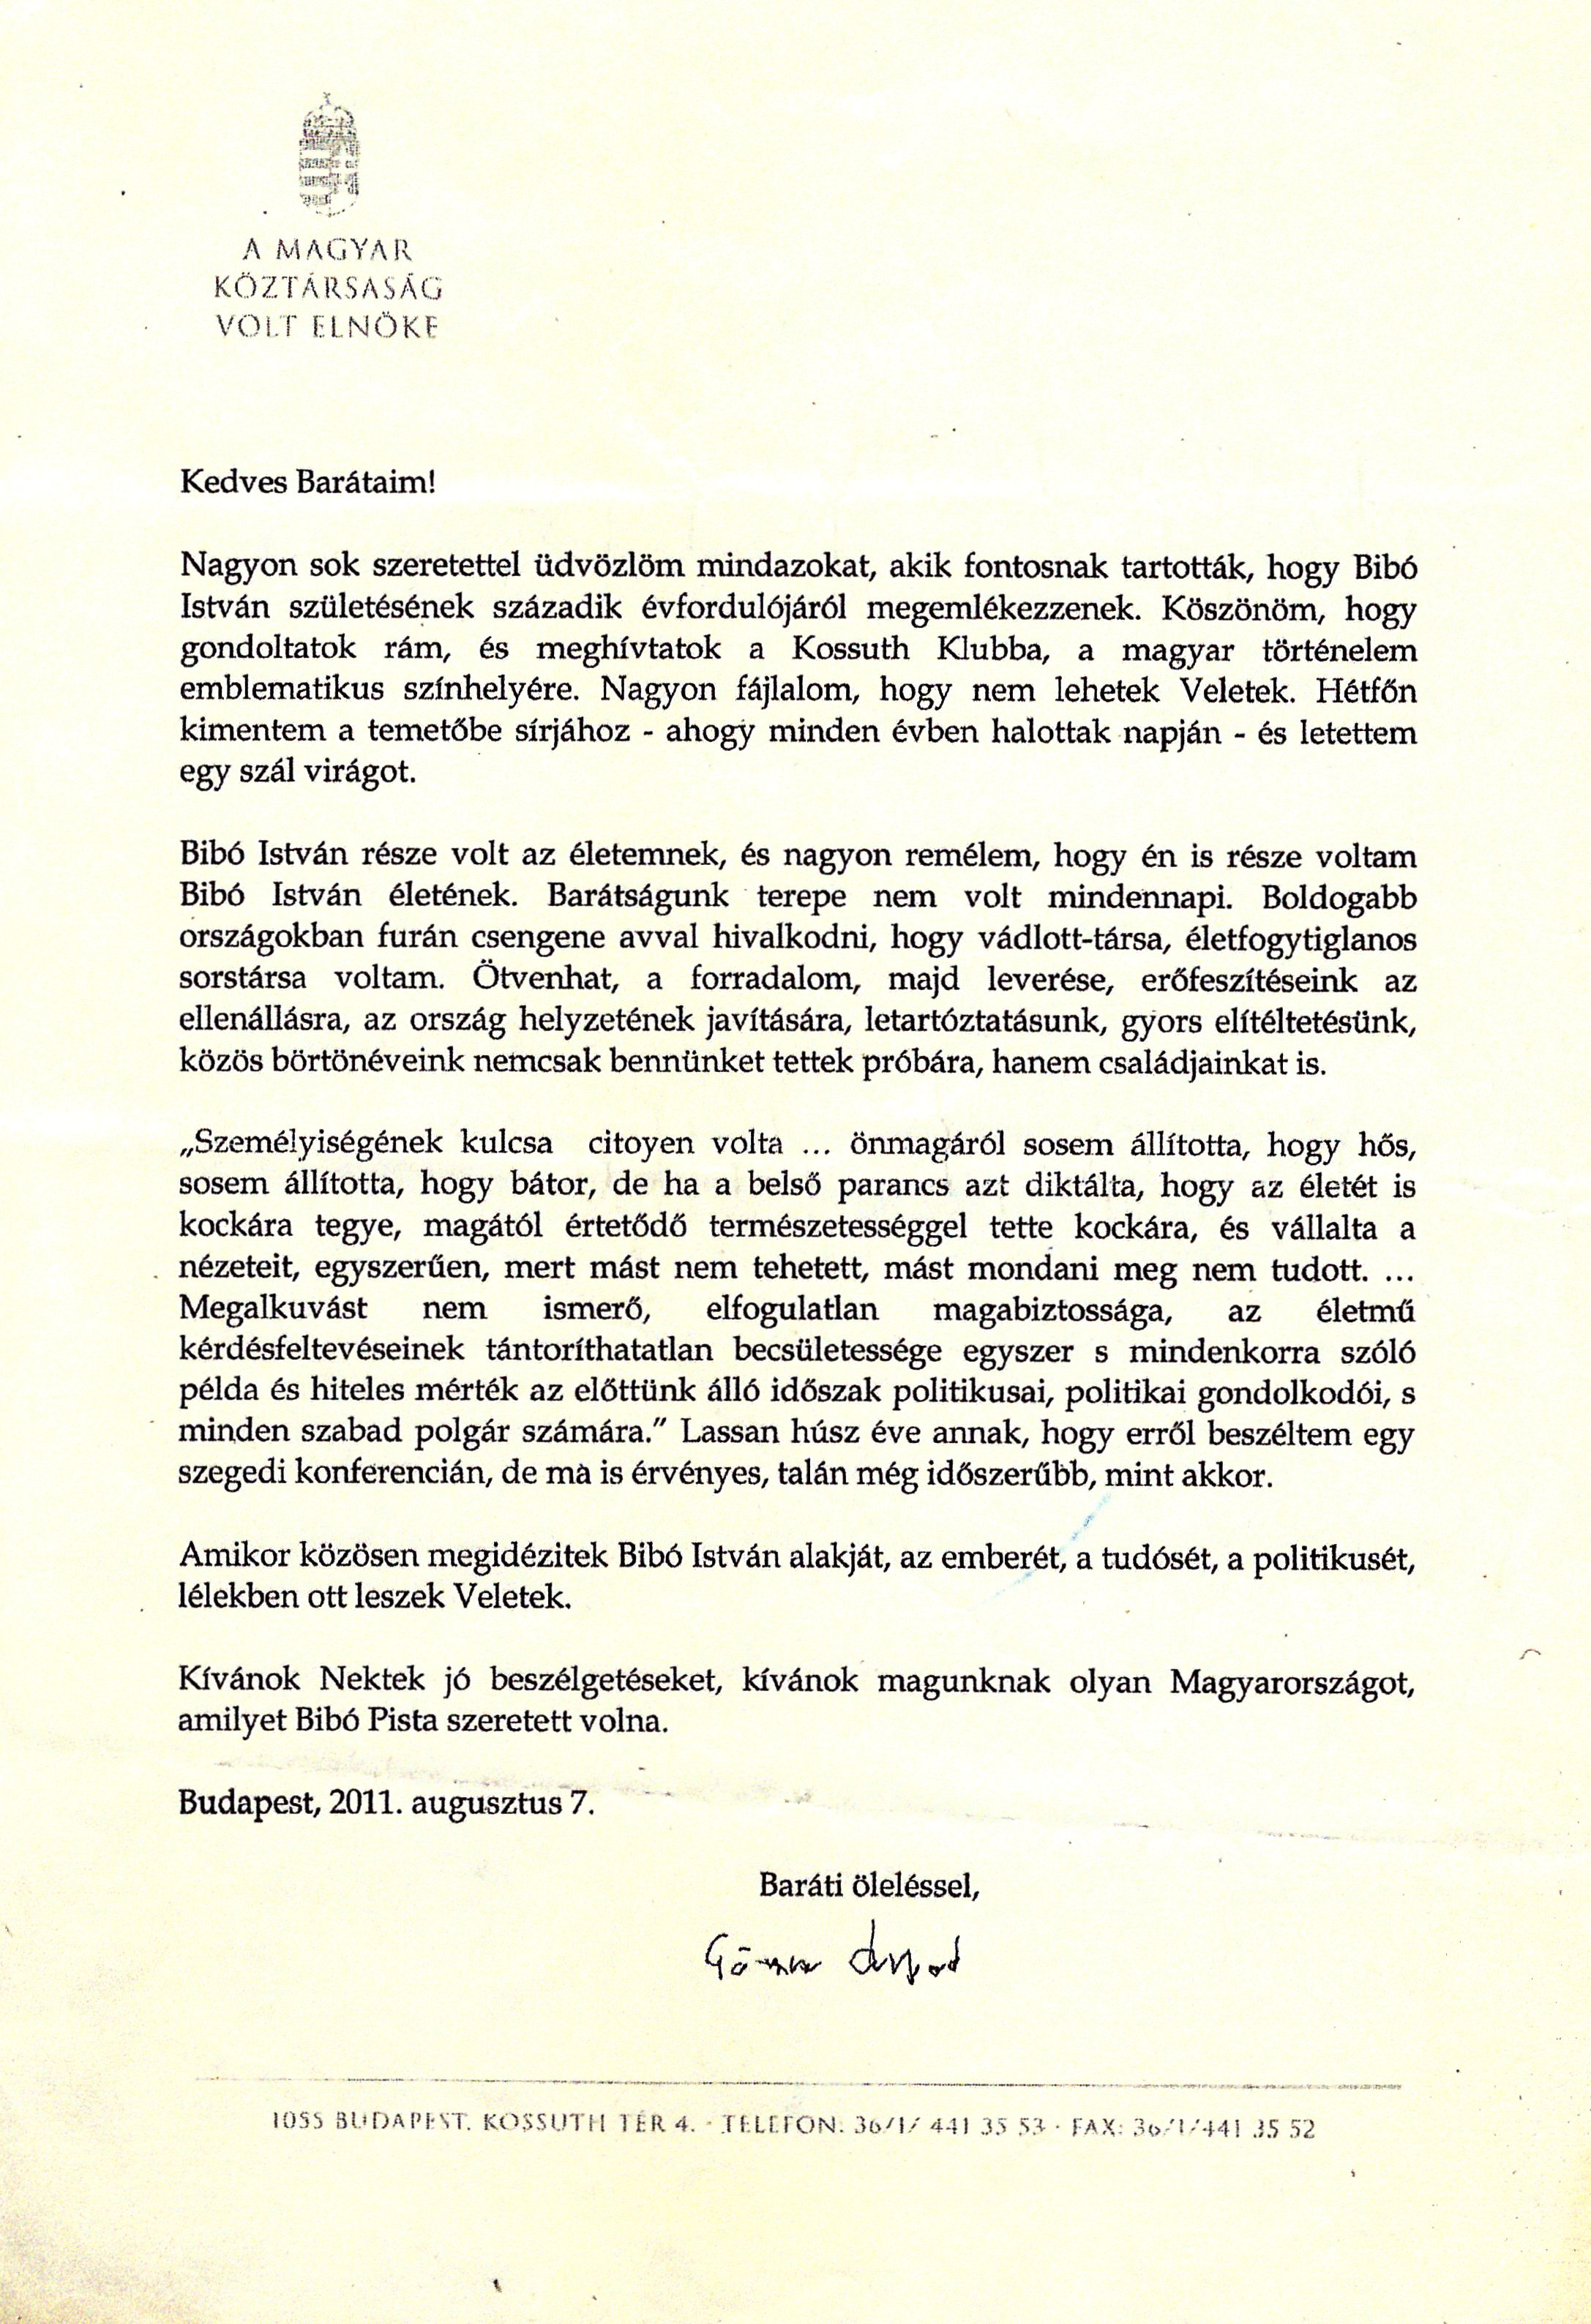 Ex-President Árpád Göncz's letter to the participants of a jubilary conference held at Kossuth Klub, Budapest